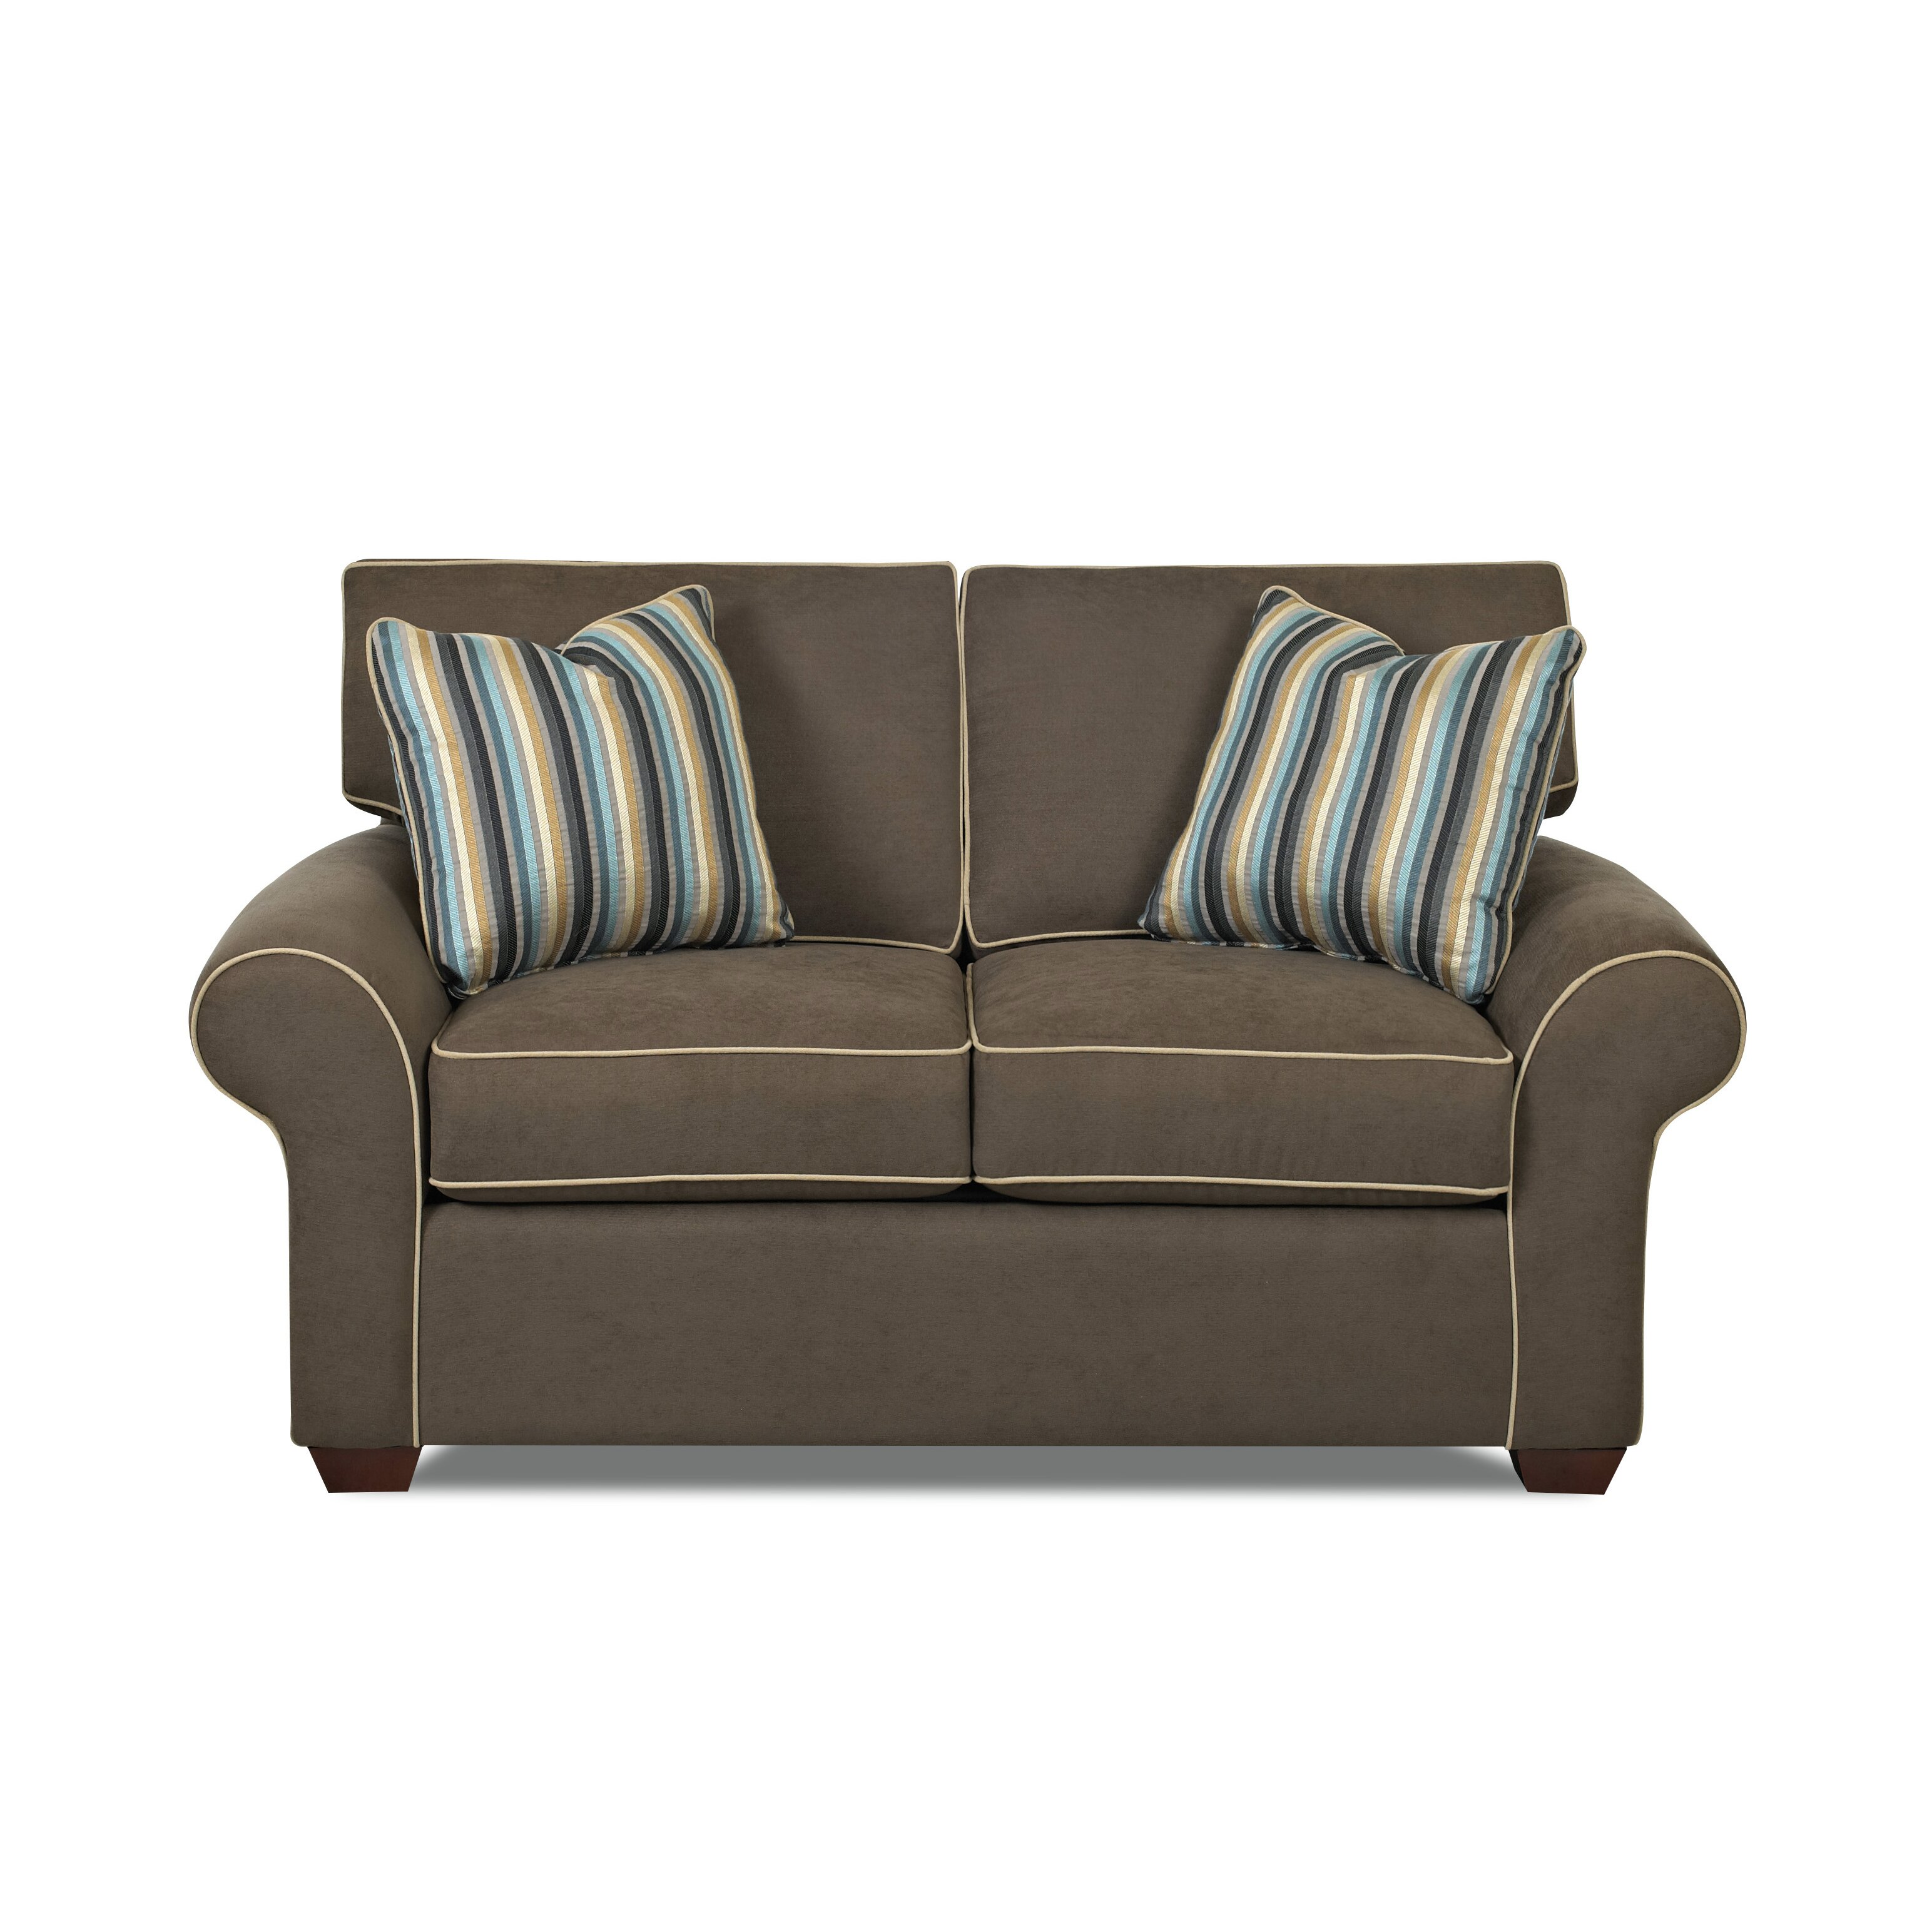 Klaussner Furniture Milton 66 Loveseat Reviews Wayfair